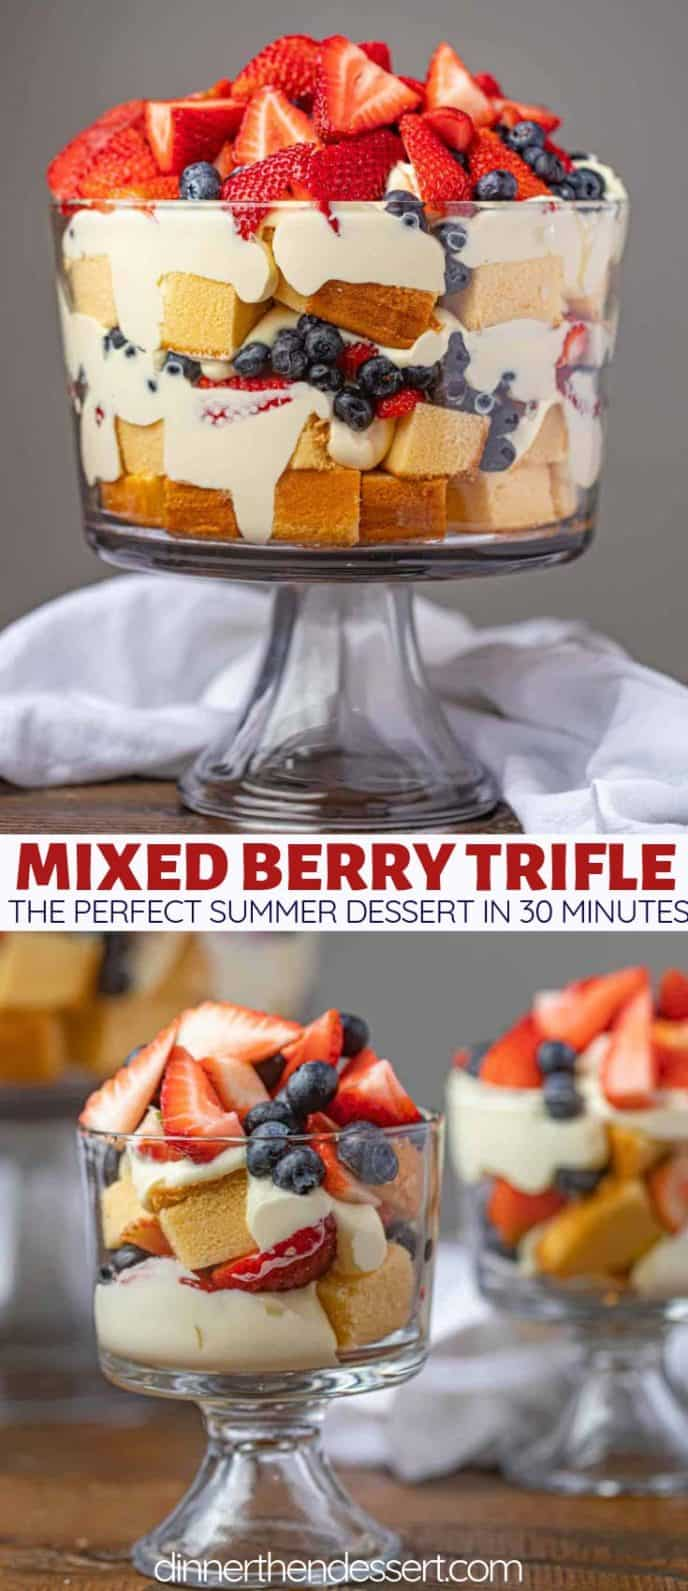 Mixed Berry Trifle Collage Photograph